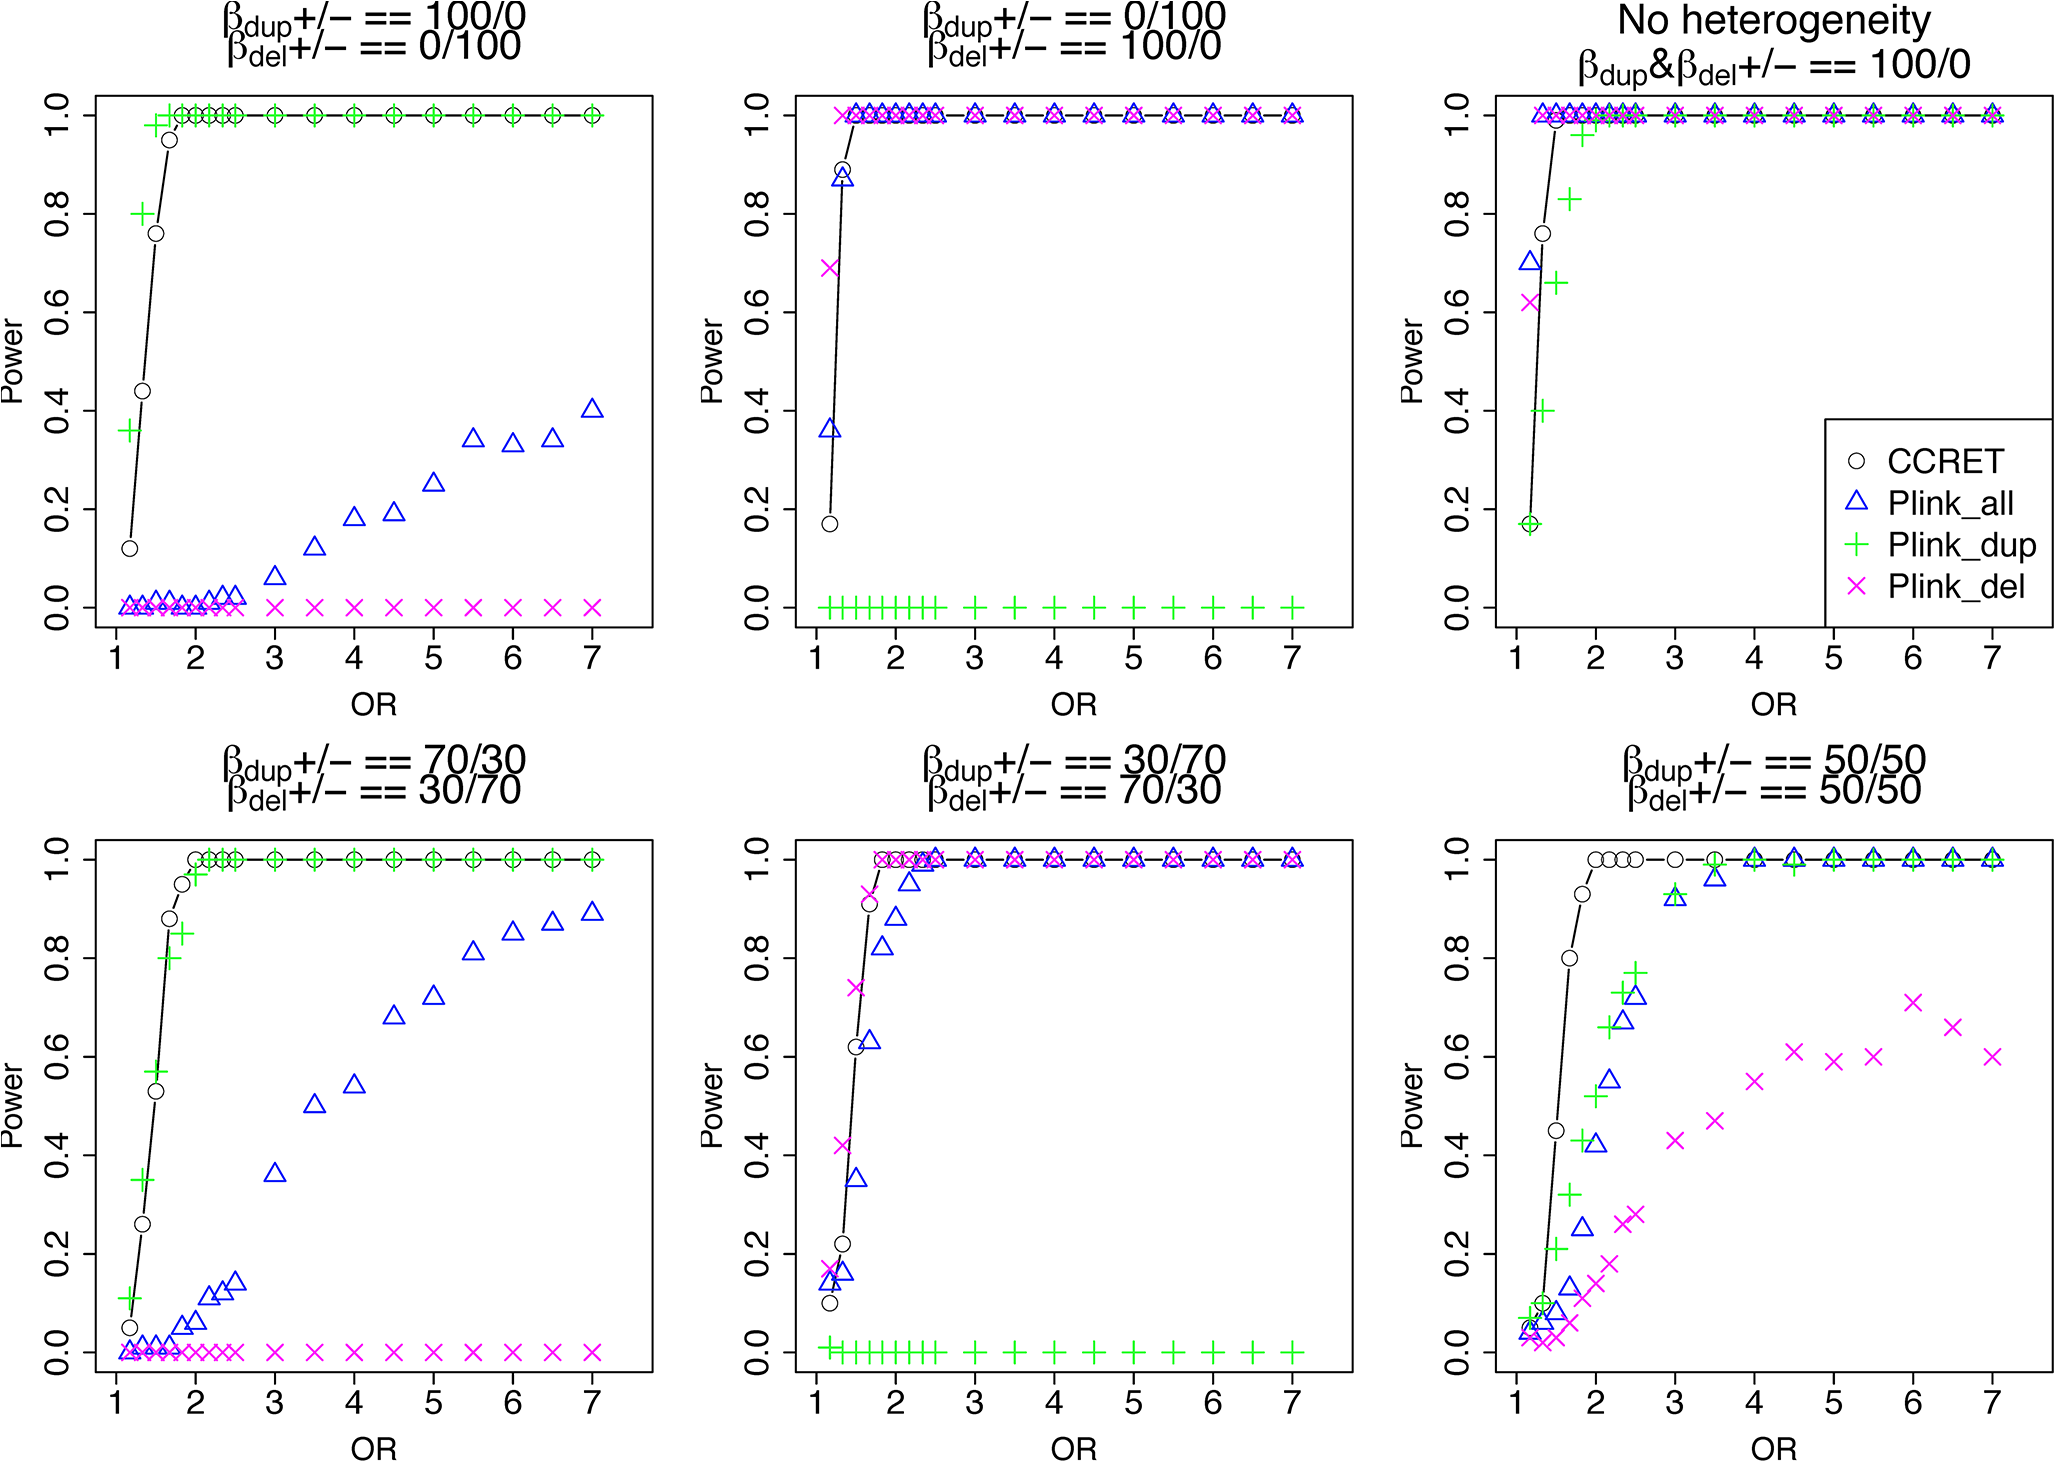 Power comparison between CCRET and PLINK 1-sided tests for simulation I-A: between-locus heterogeneity of the dosage simulation.